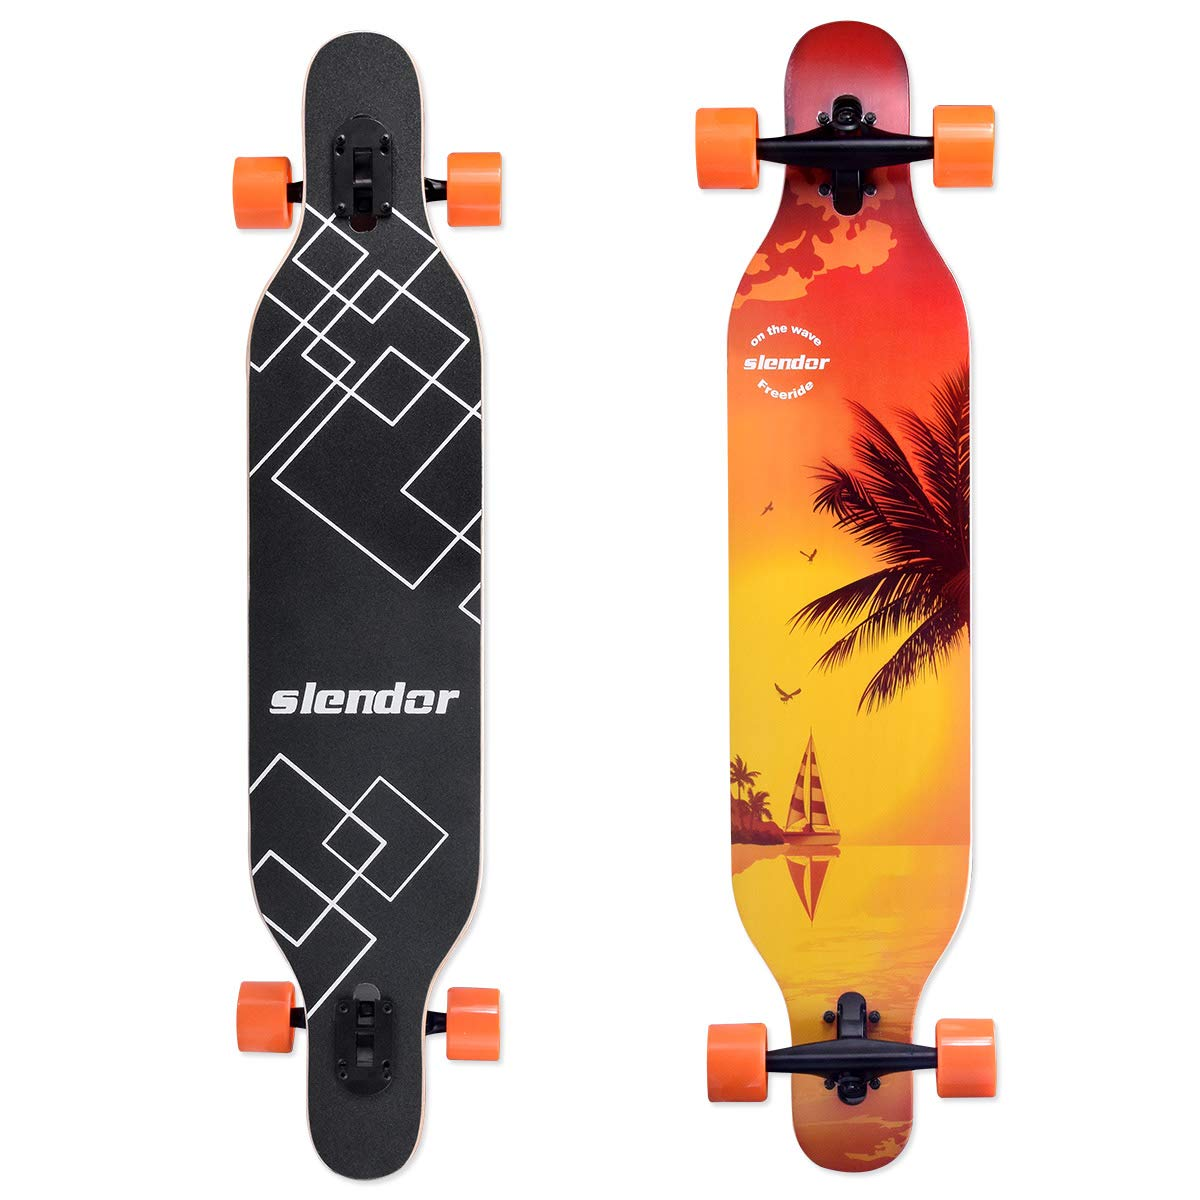 slendor Longboard Skateboards 42 inch Drop Through Deck Complete Maple Cruiser Freestyle, Camber Concave by Slendor